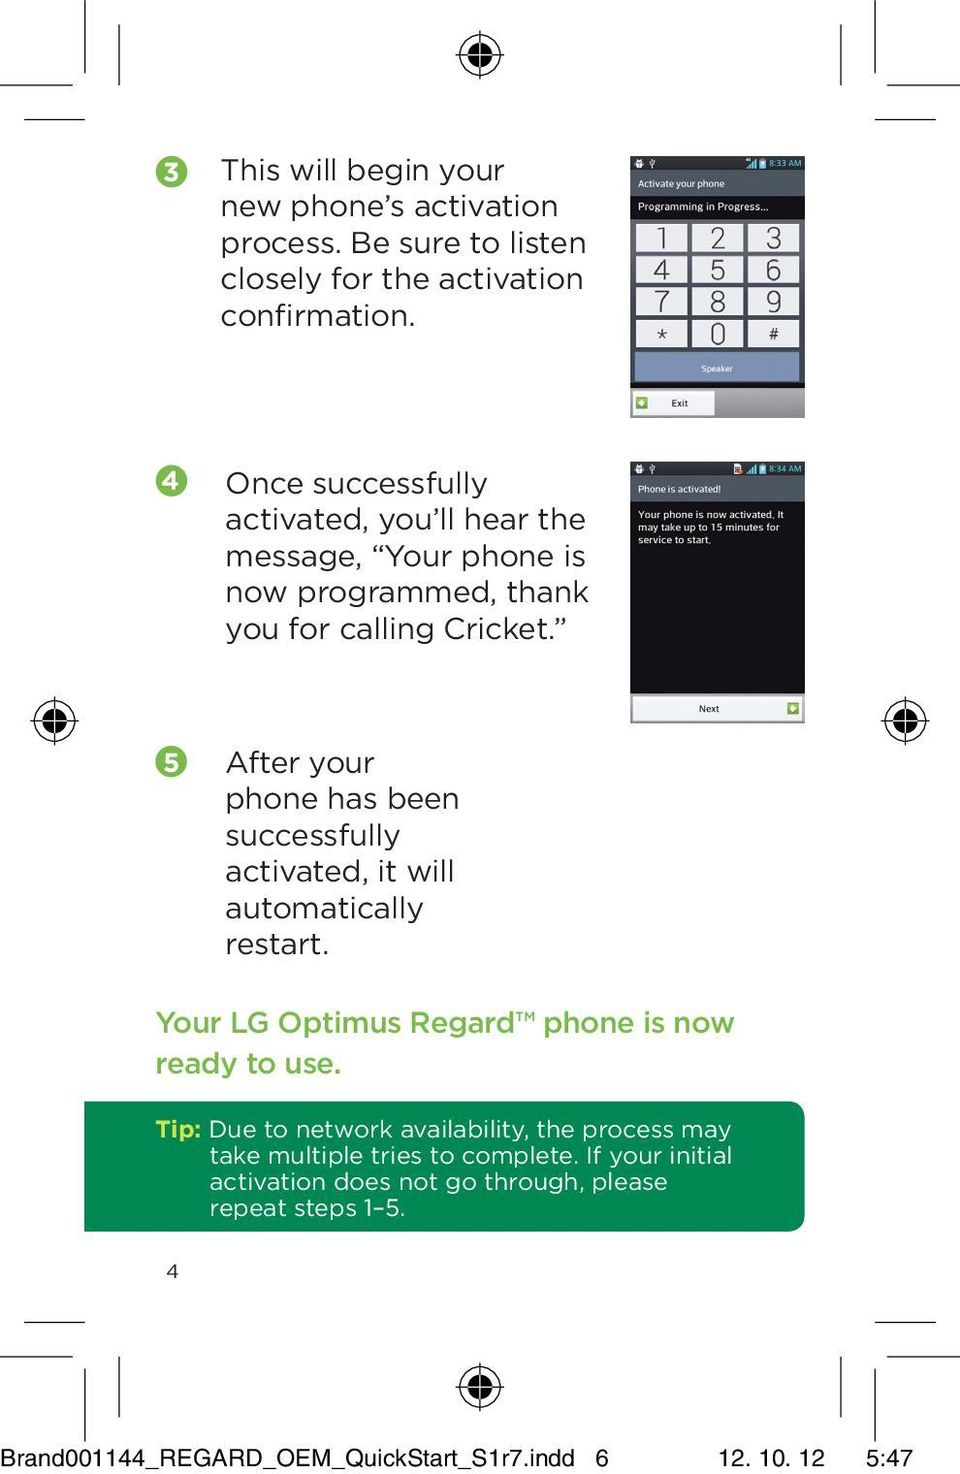 5 After your phone has been successfully activated, it will automatically restart. Your LG Optimus Regard phone is now ready to use.